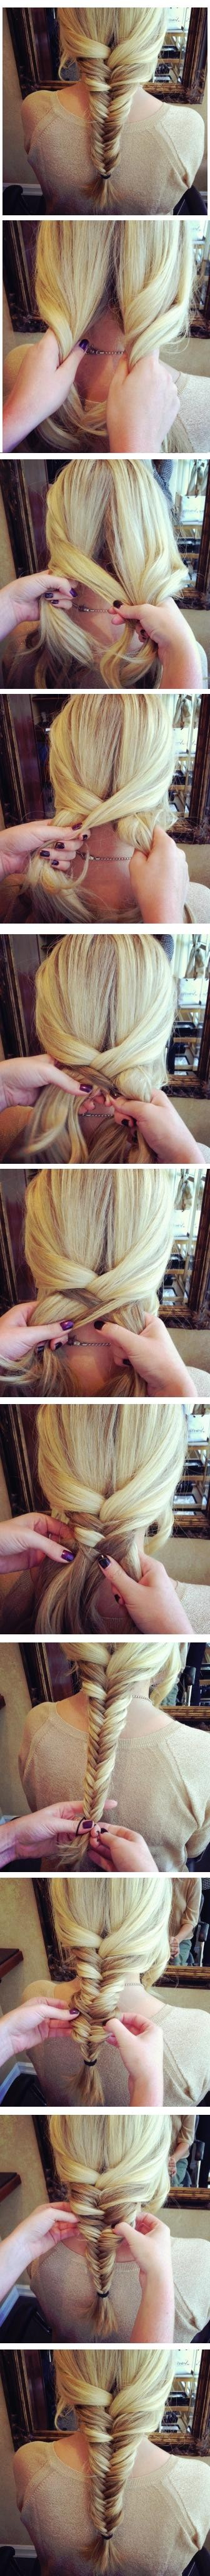 Fishtail Braid Tutorial: Cute Hairstyles for Girls